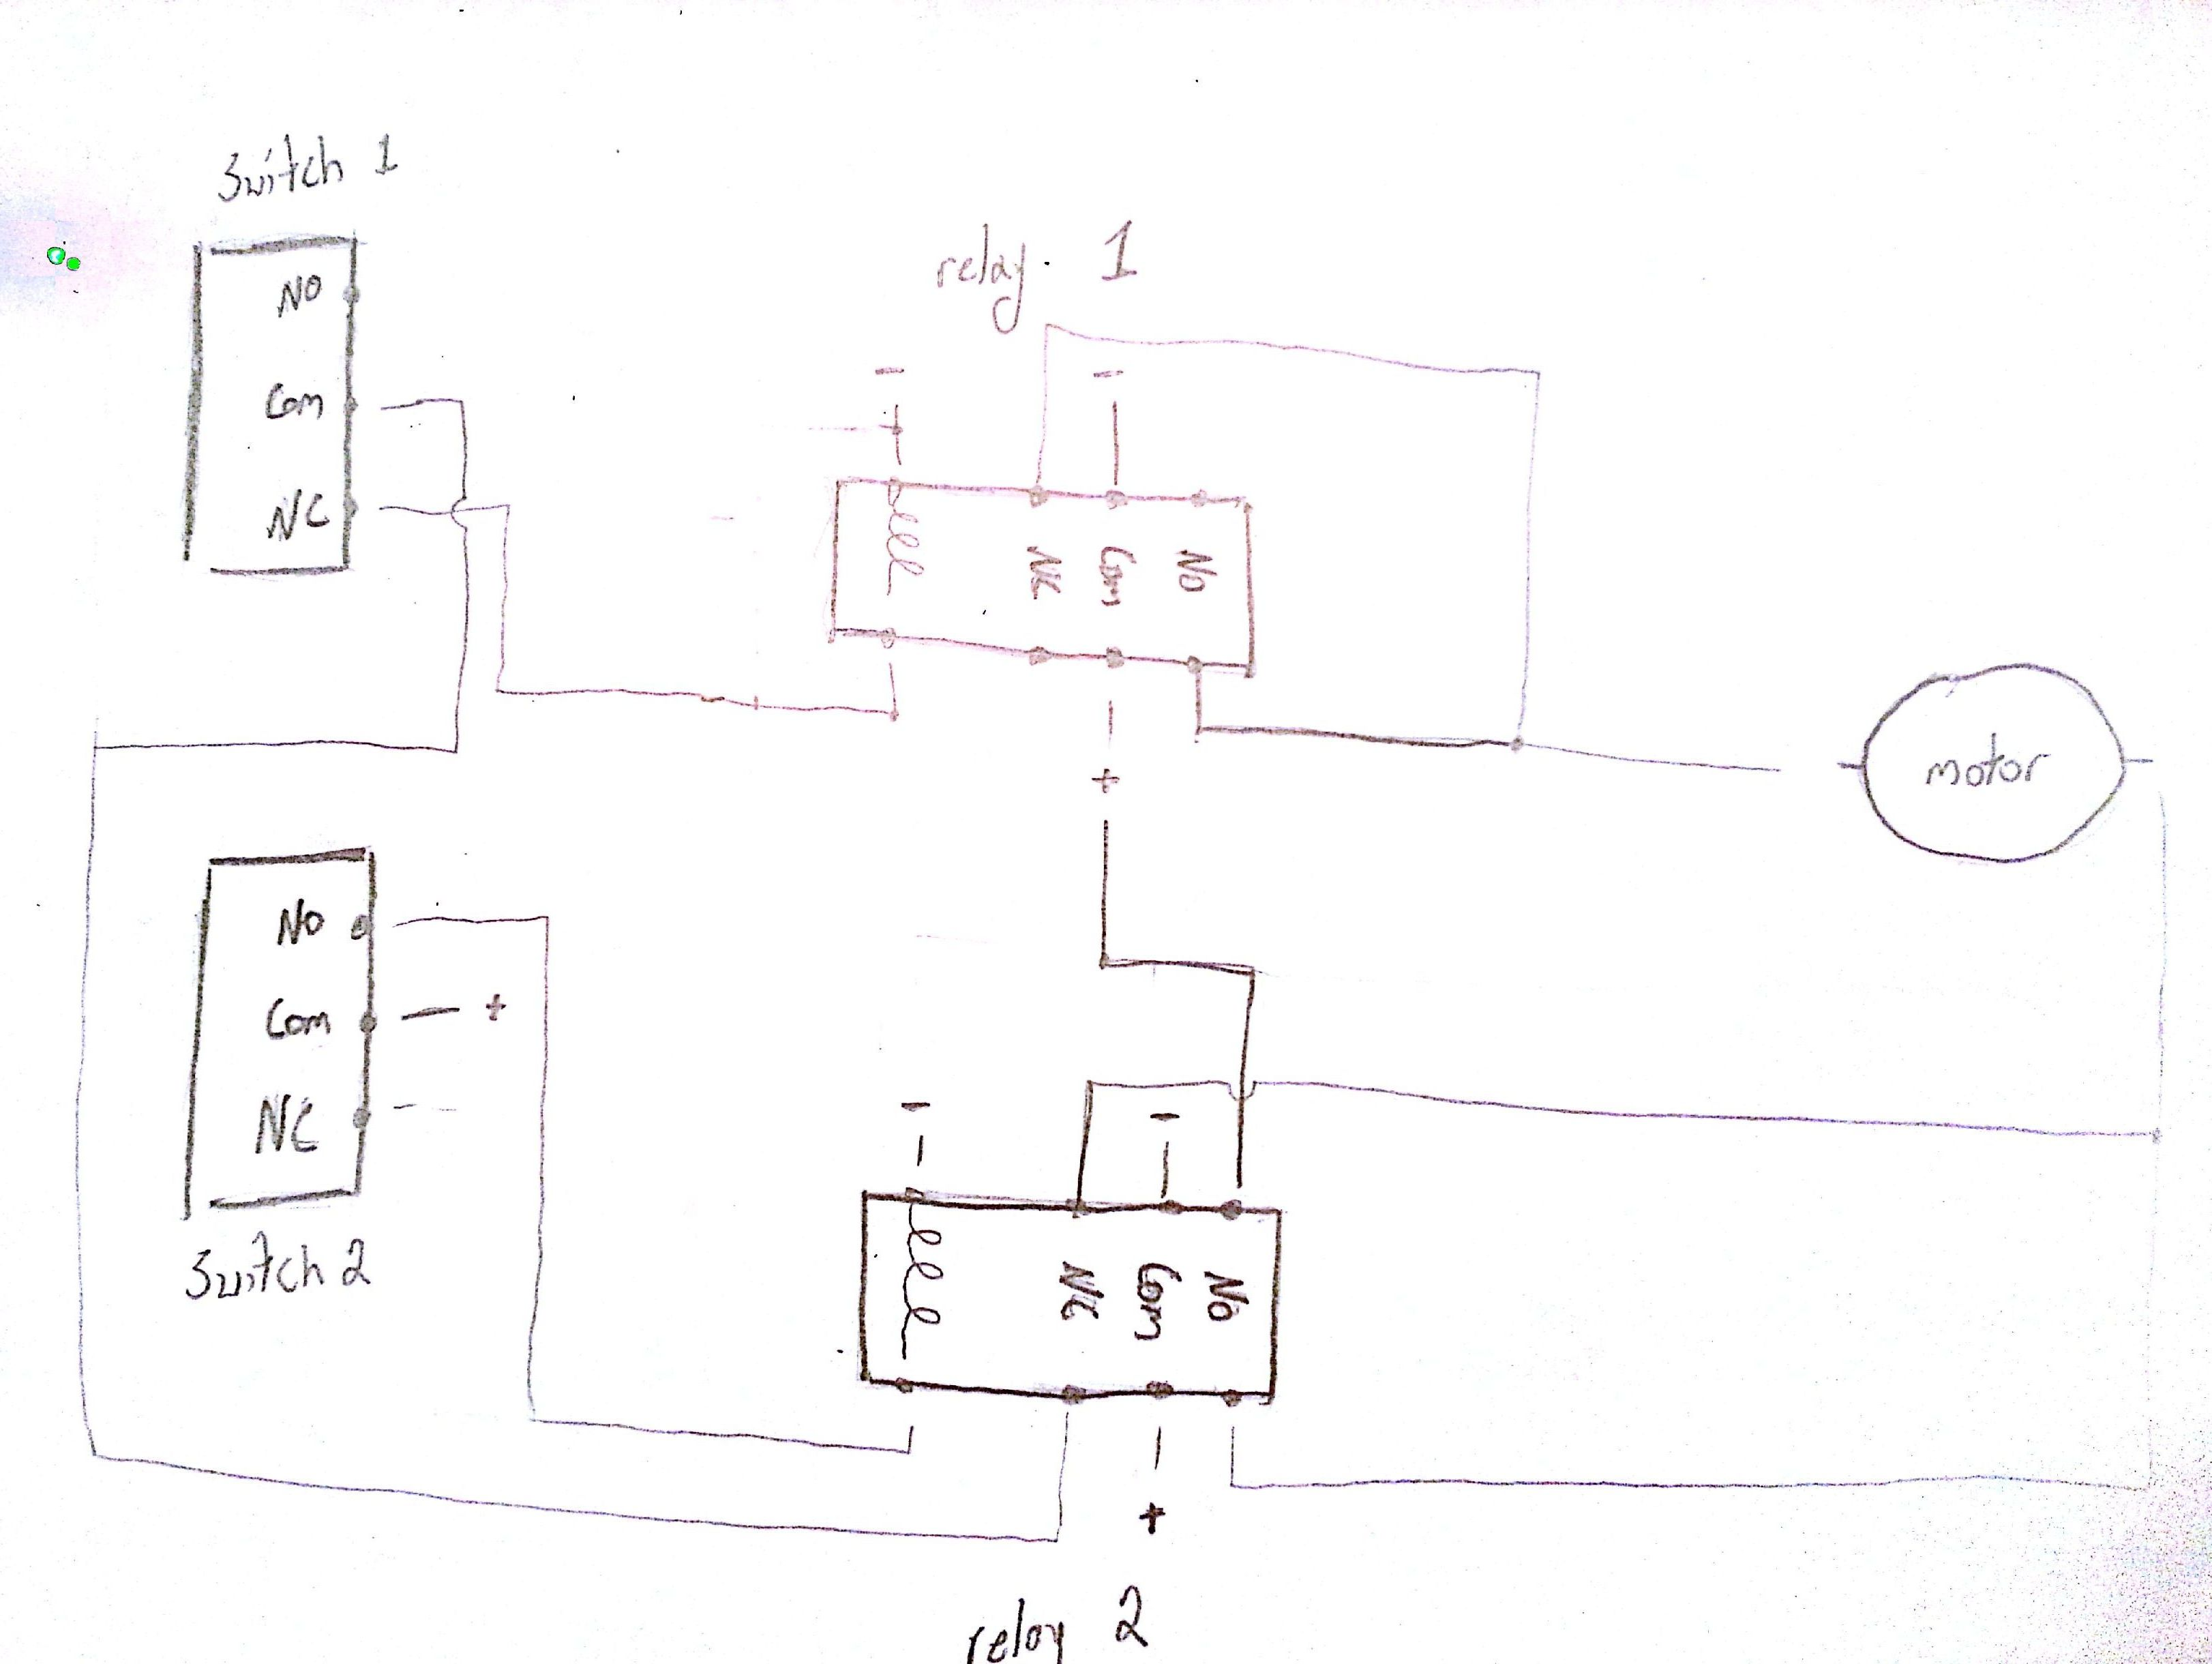 Bridgeport Mill Wiring Diagram On The Forward And Reverse ...